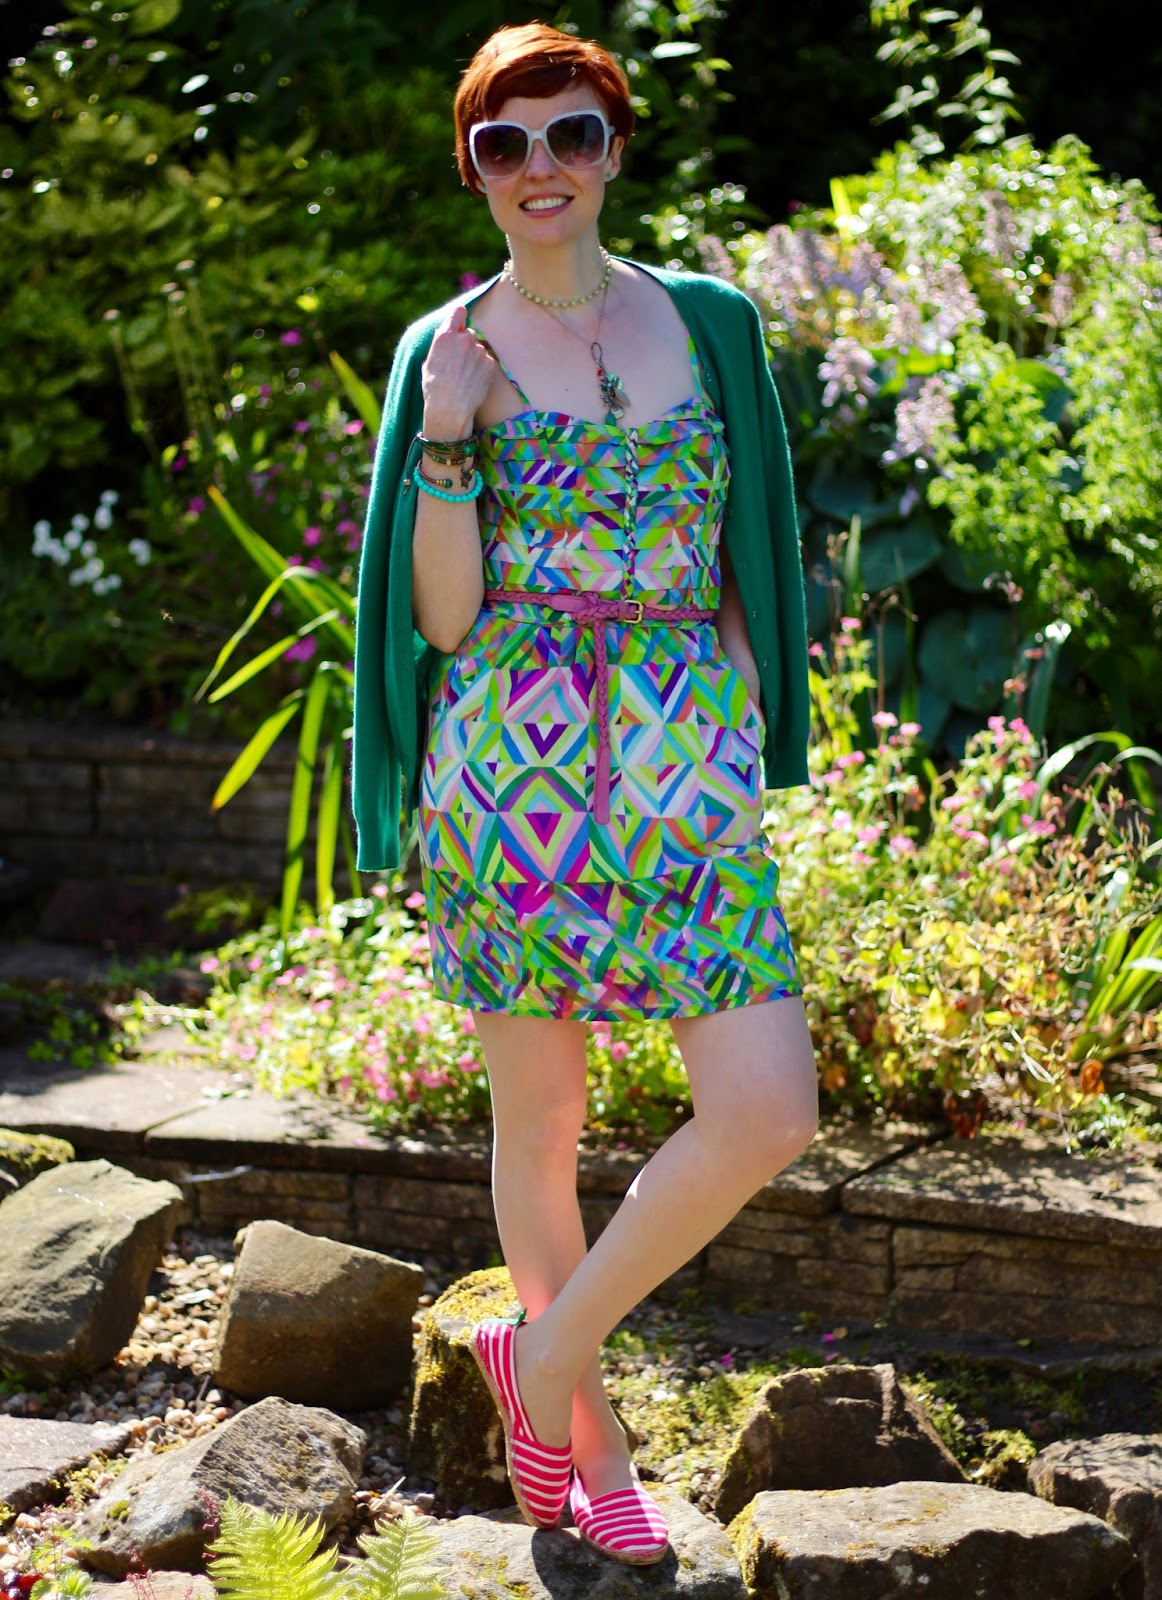 Fake Fabulous | What makes a summer dress frumpy? Summer dress, espadrilles and oversized glasses | Green, Pink and White.